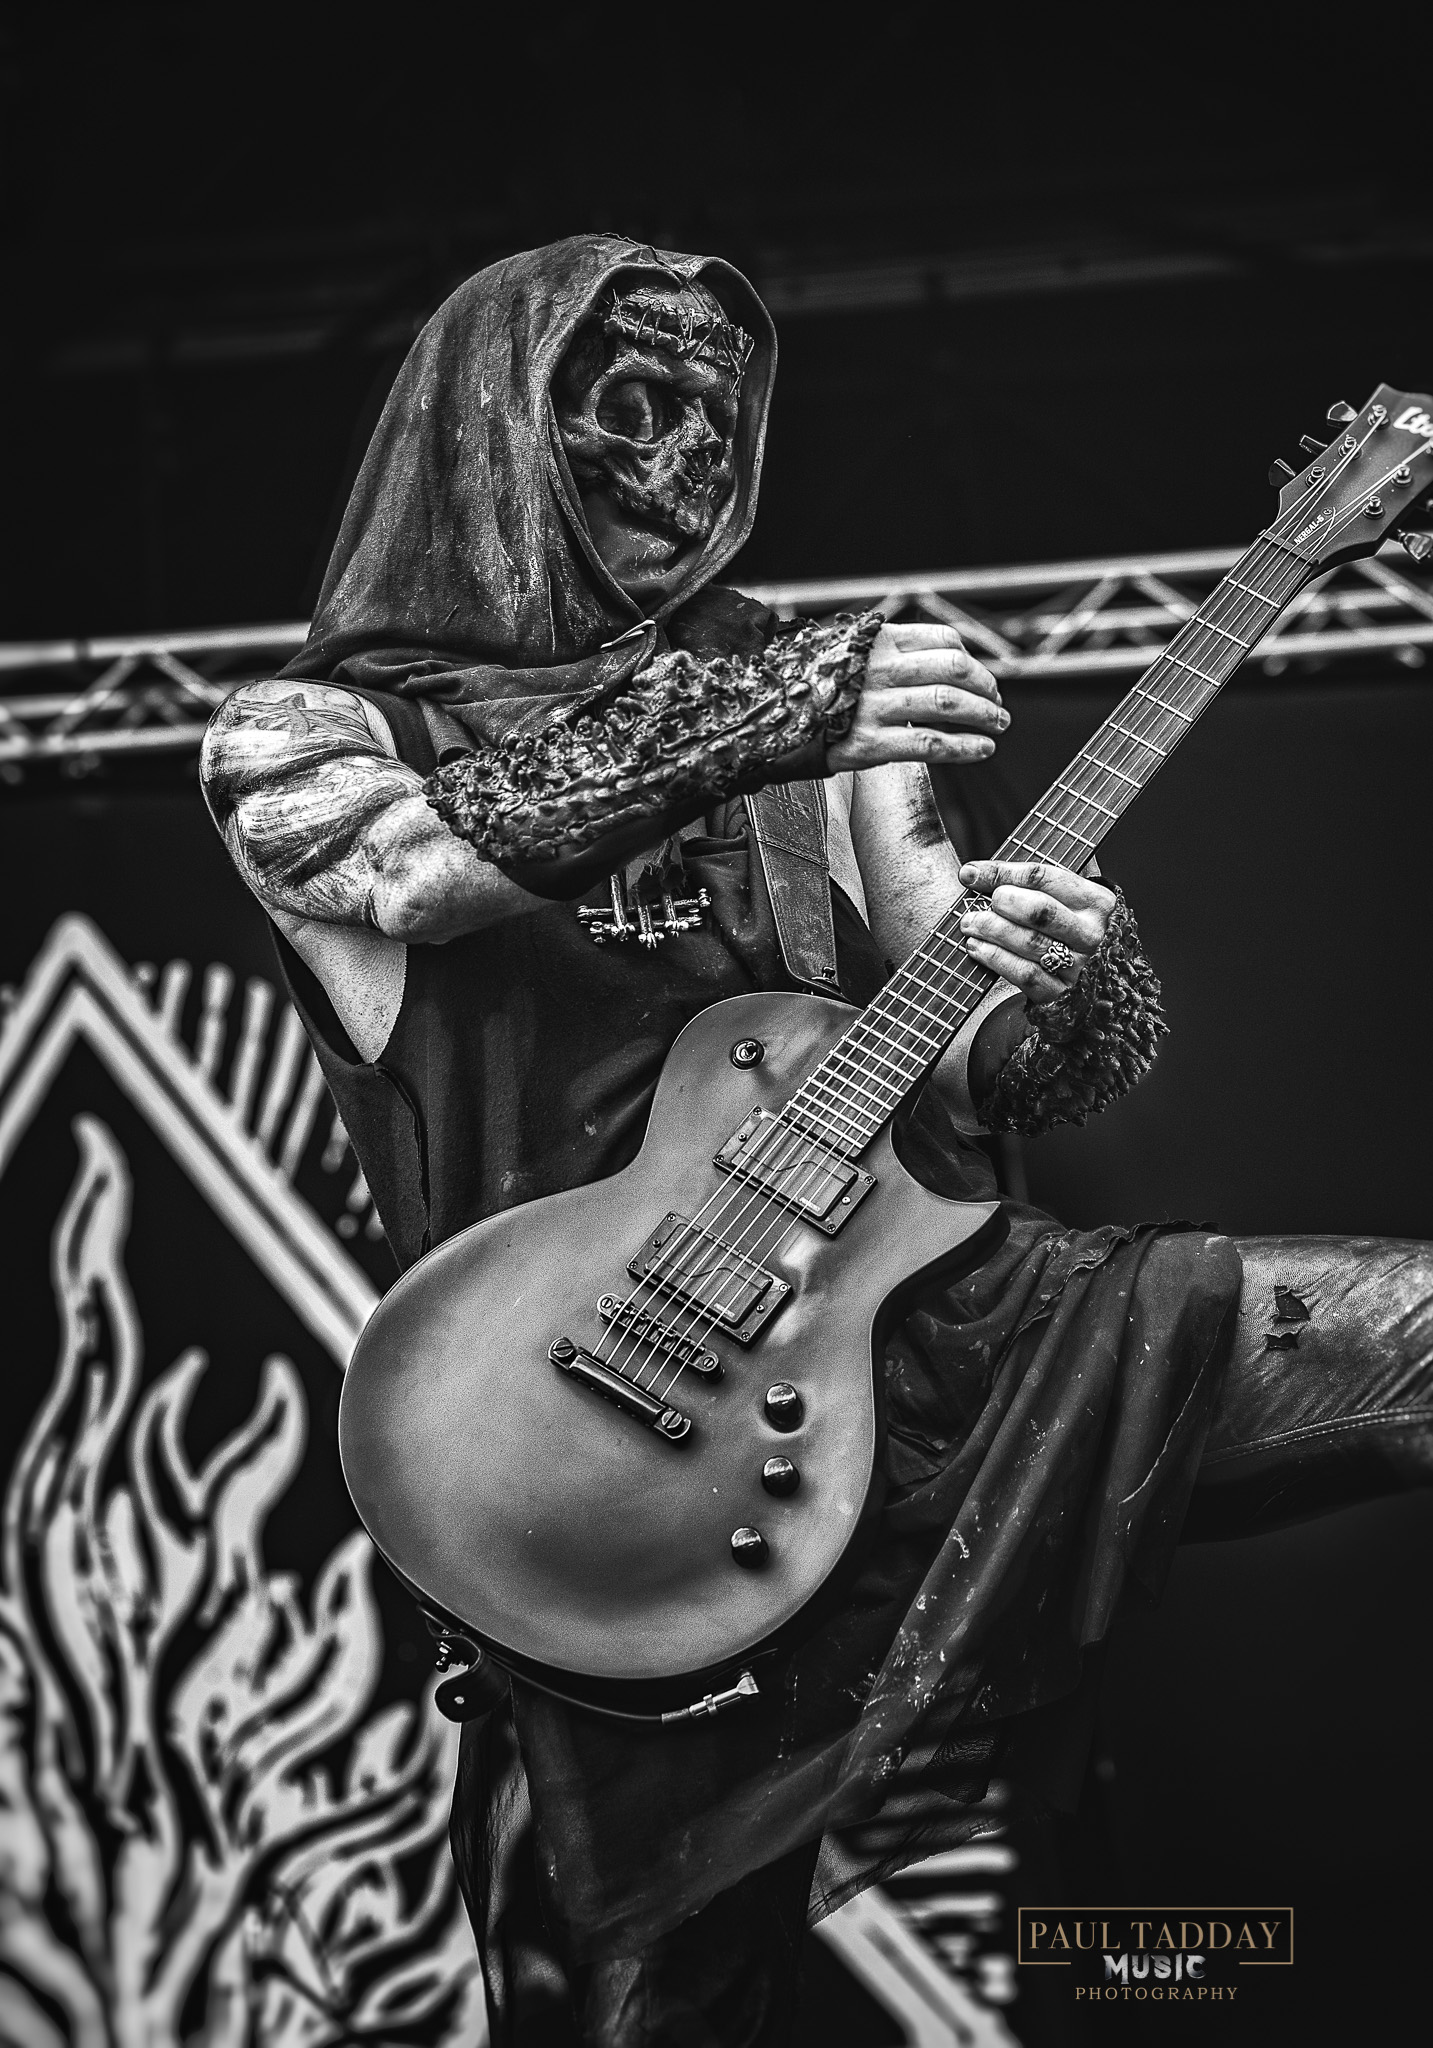 behemoth - download melbourne - march 2019 - web - paul tadday photography - 3.jpg